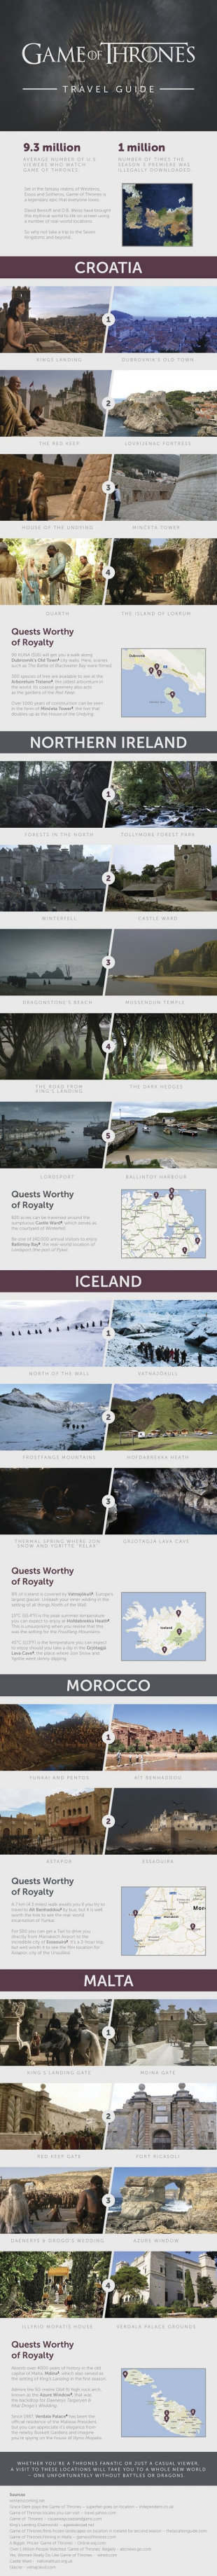 Game of Thrones Travel Guide Infographic image game of thrones travel guide 22